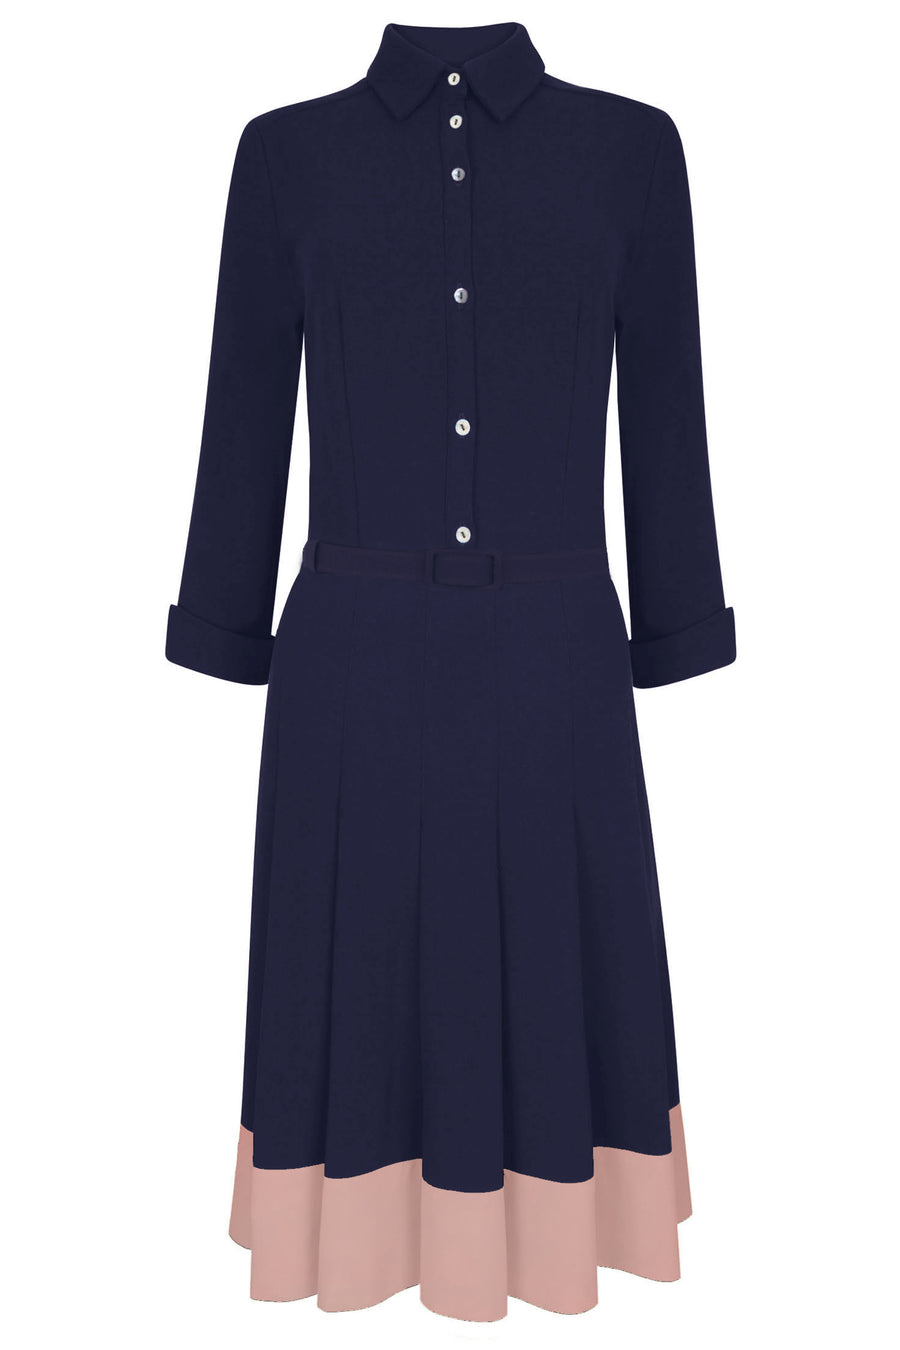 Lewis Navy & Pink Shirt Dress